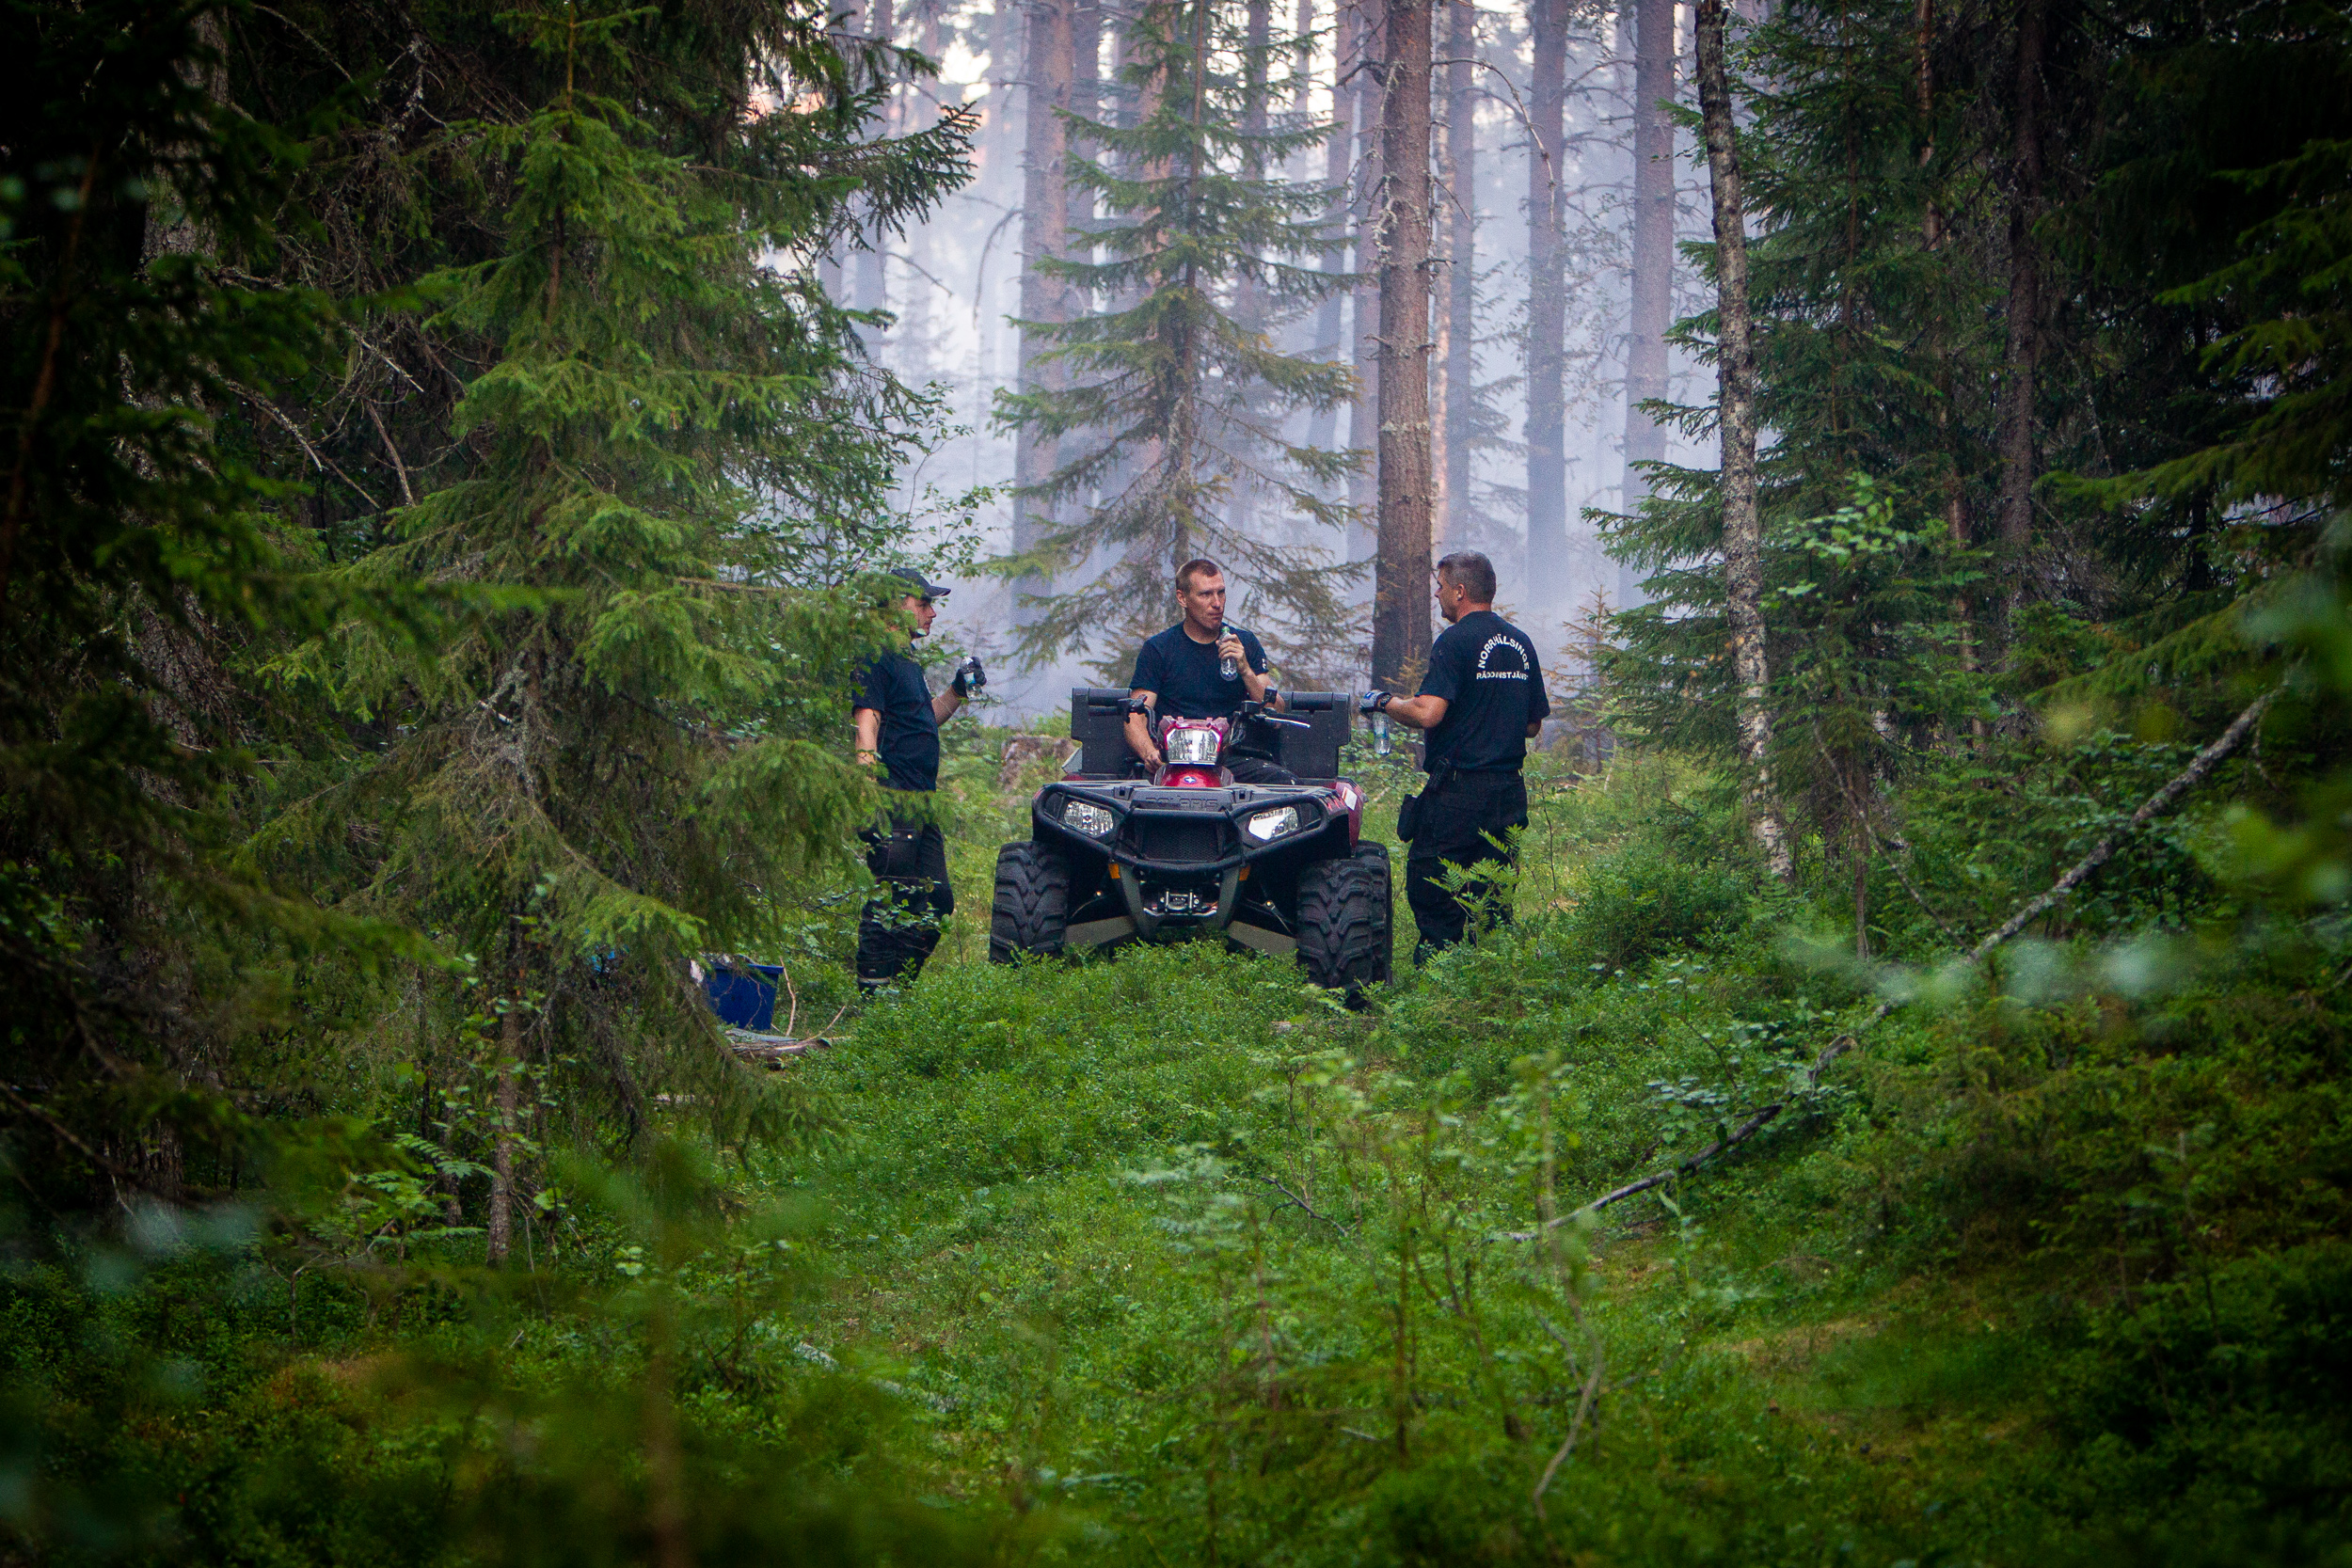 ATVs make it easy for firefighters to move between new places where the fire might flare up.